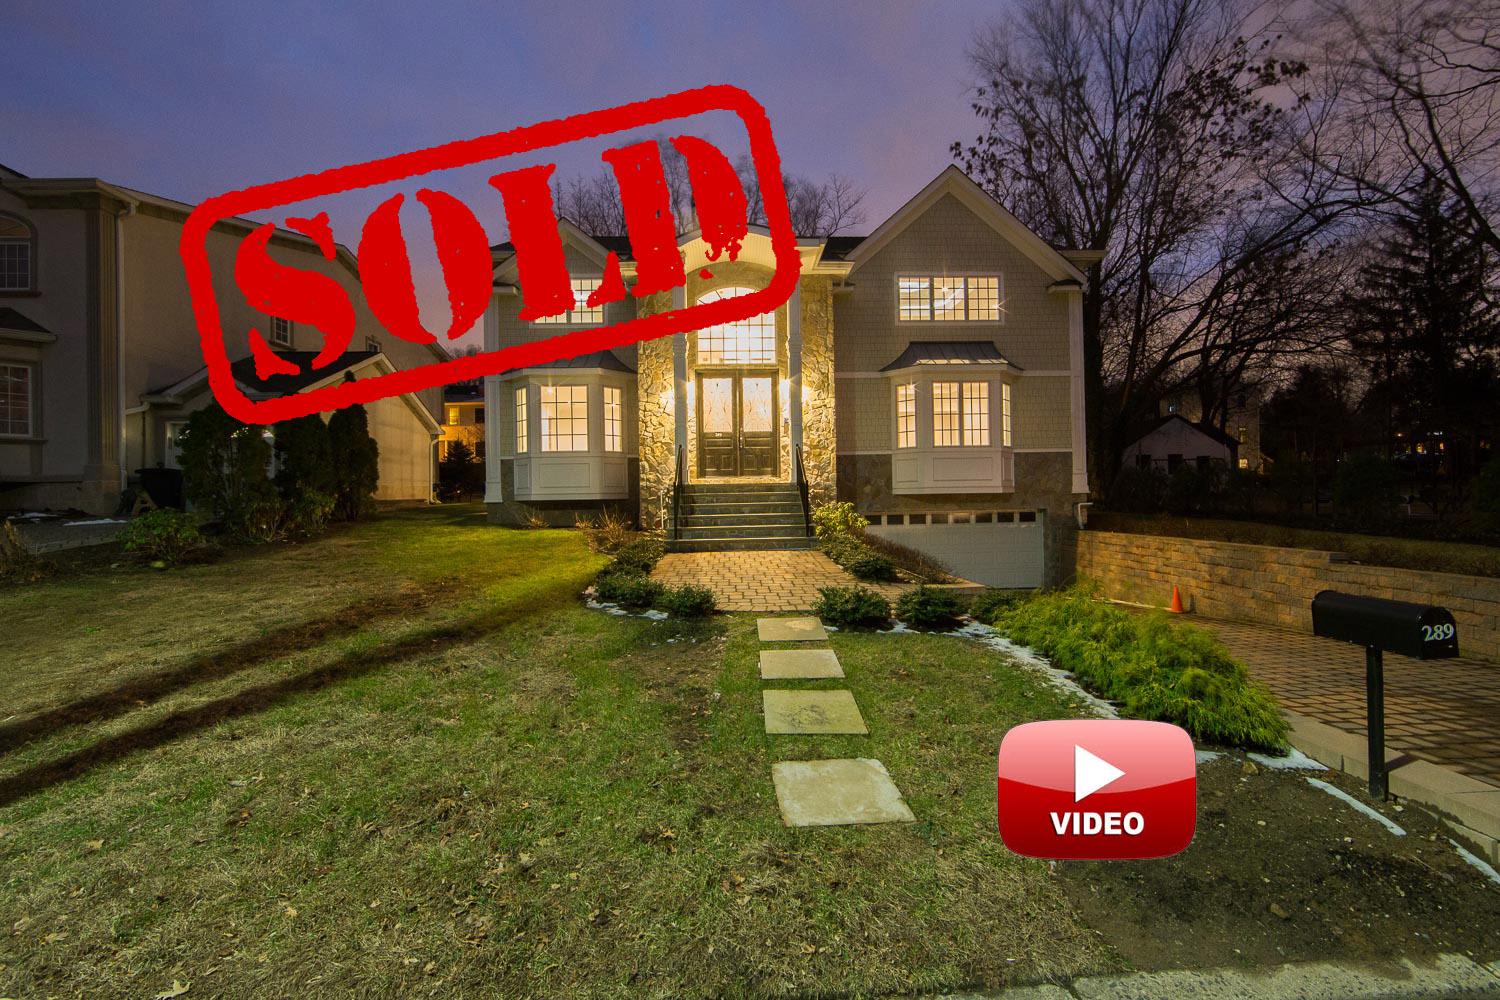 289 starling road, englewood nj // sold